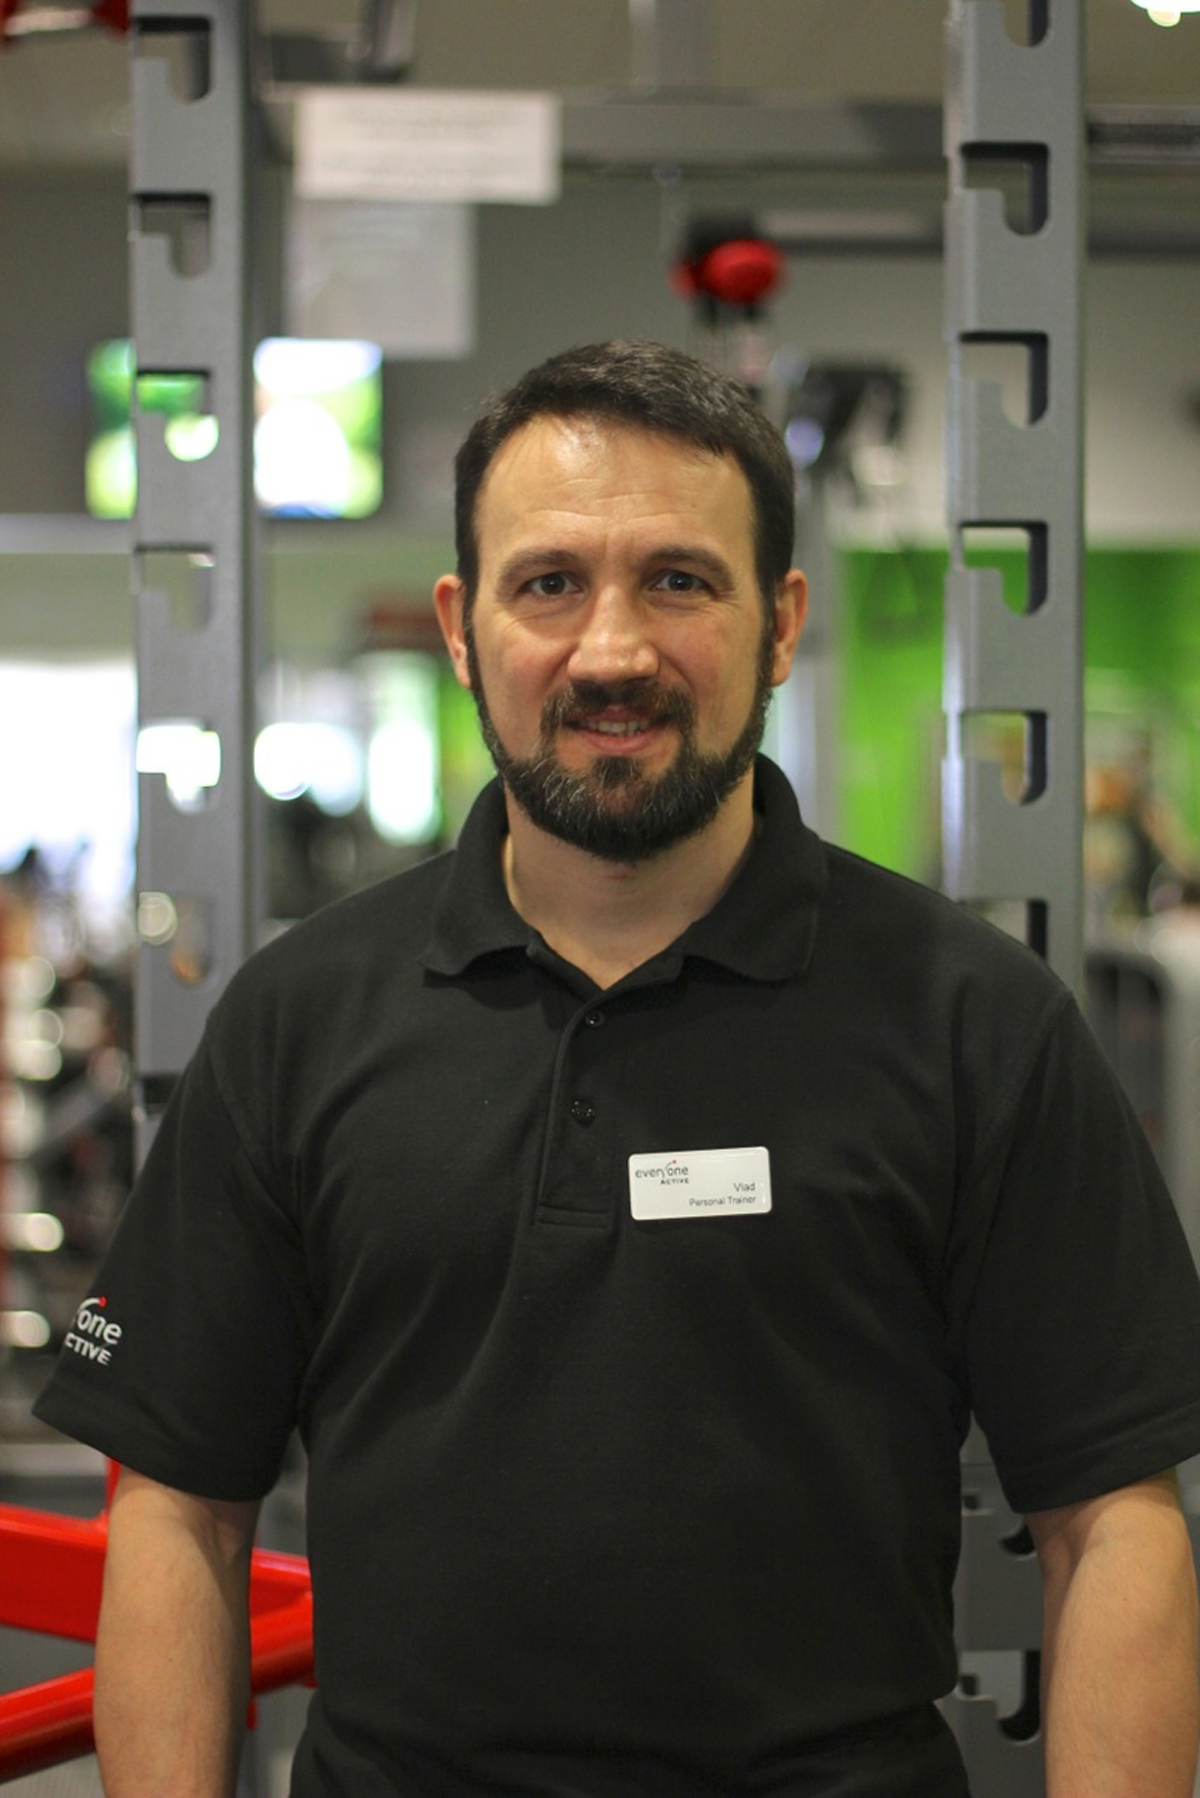 Vlad the gym-trainer nominated for award